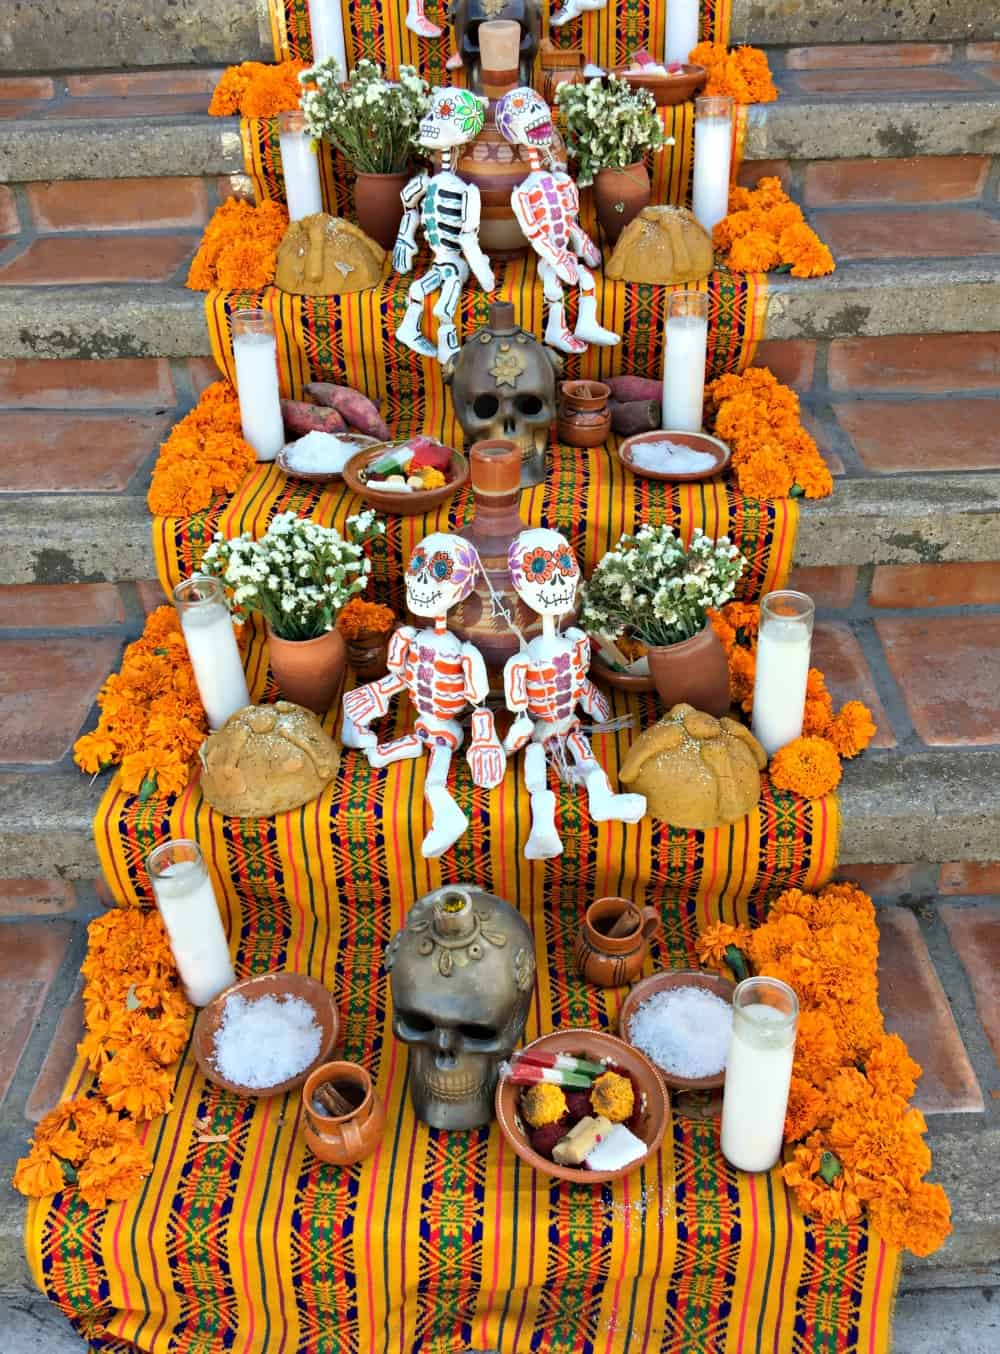 Stairs decorated with skeletons, marigolds, skulls, and candles.